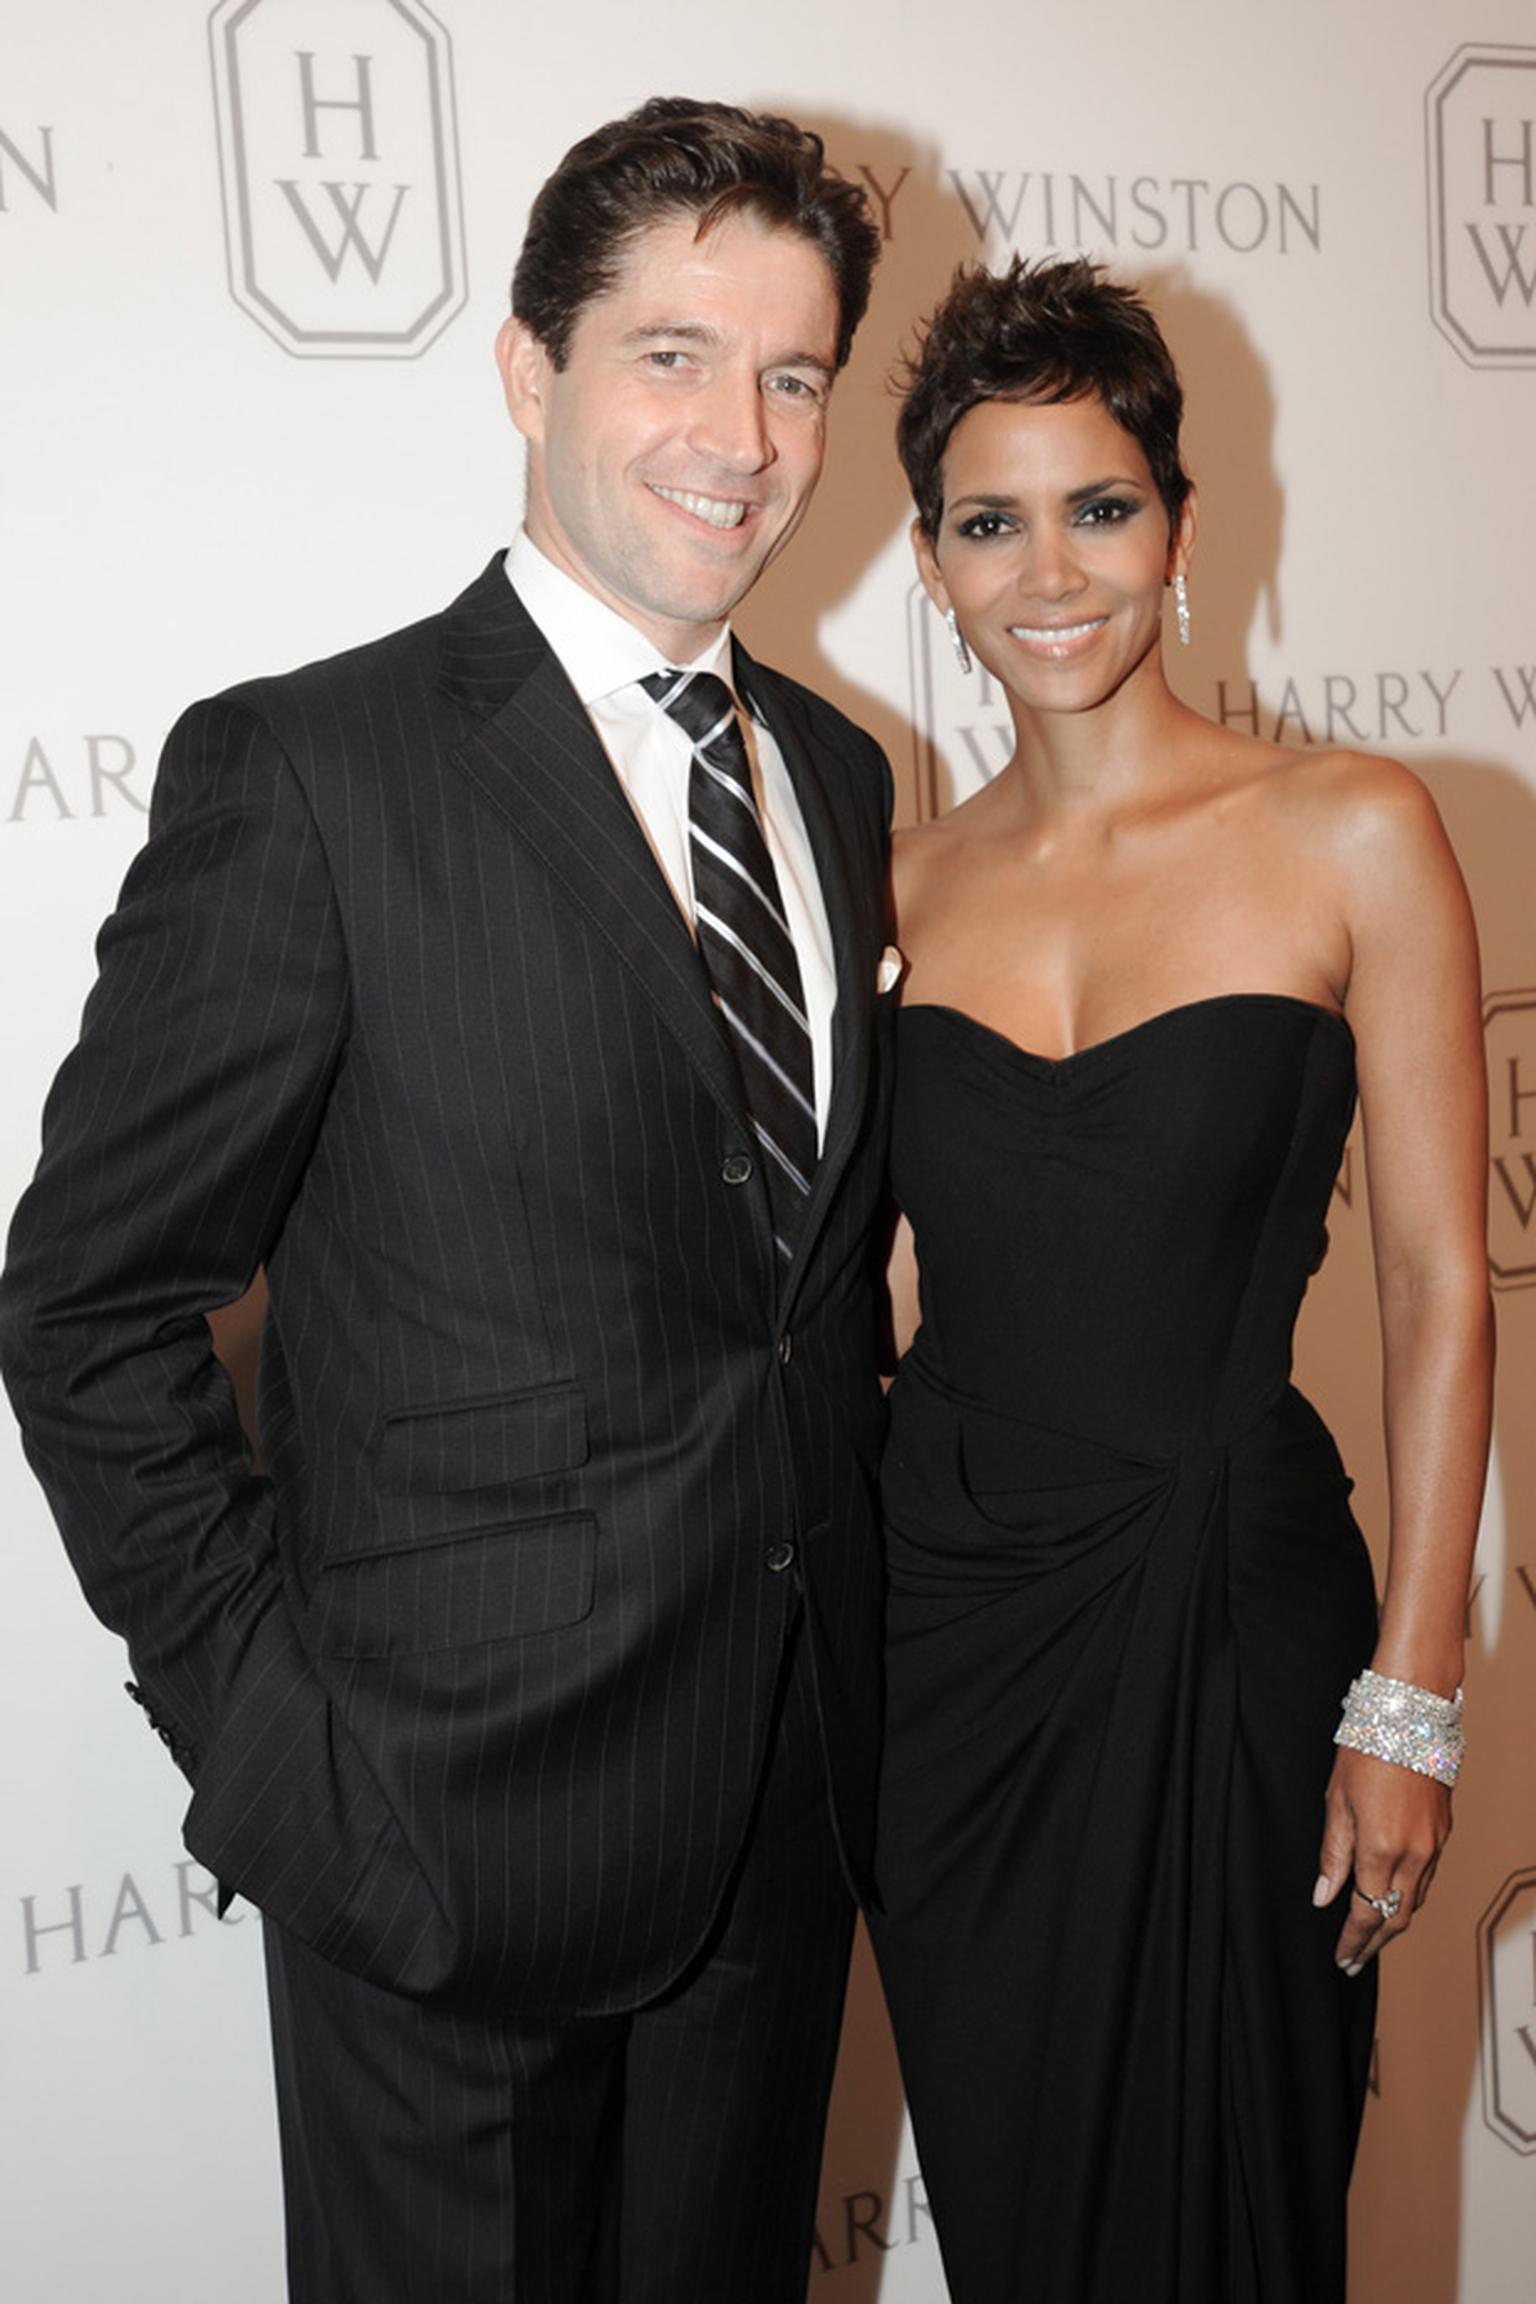 Frédéric de Narp,President & CEO, Harry Winston & Halle Berry at Court of Jewels